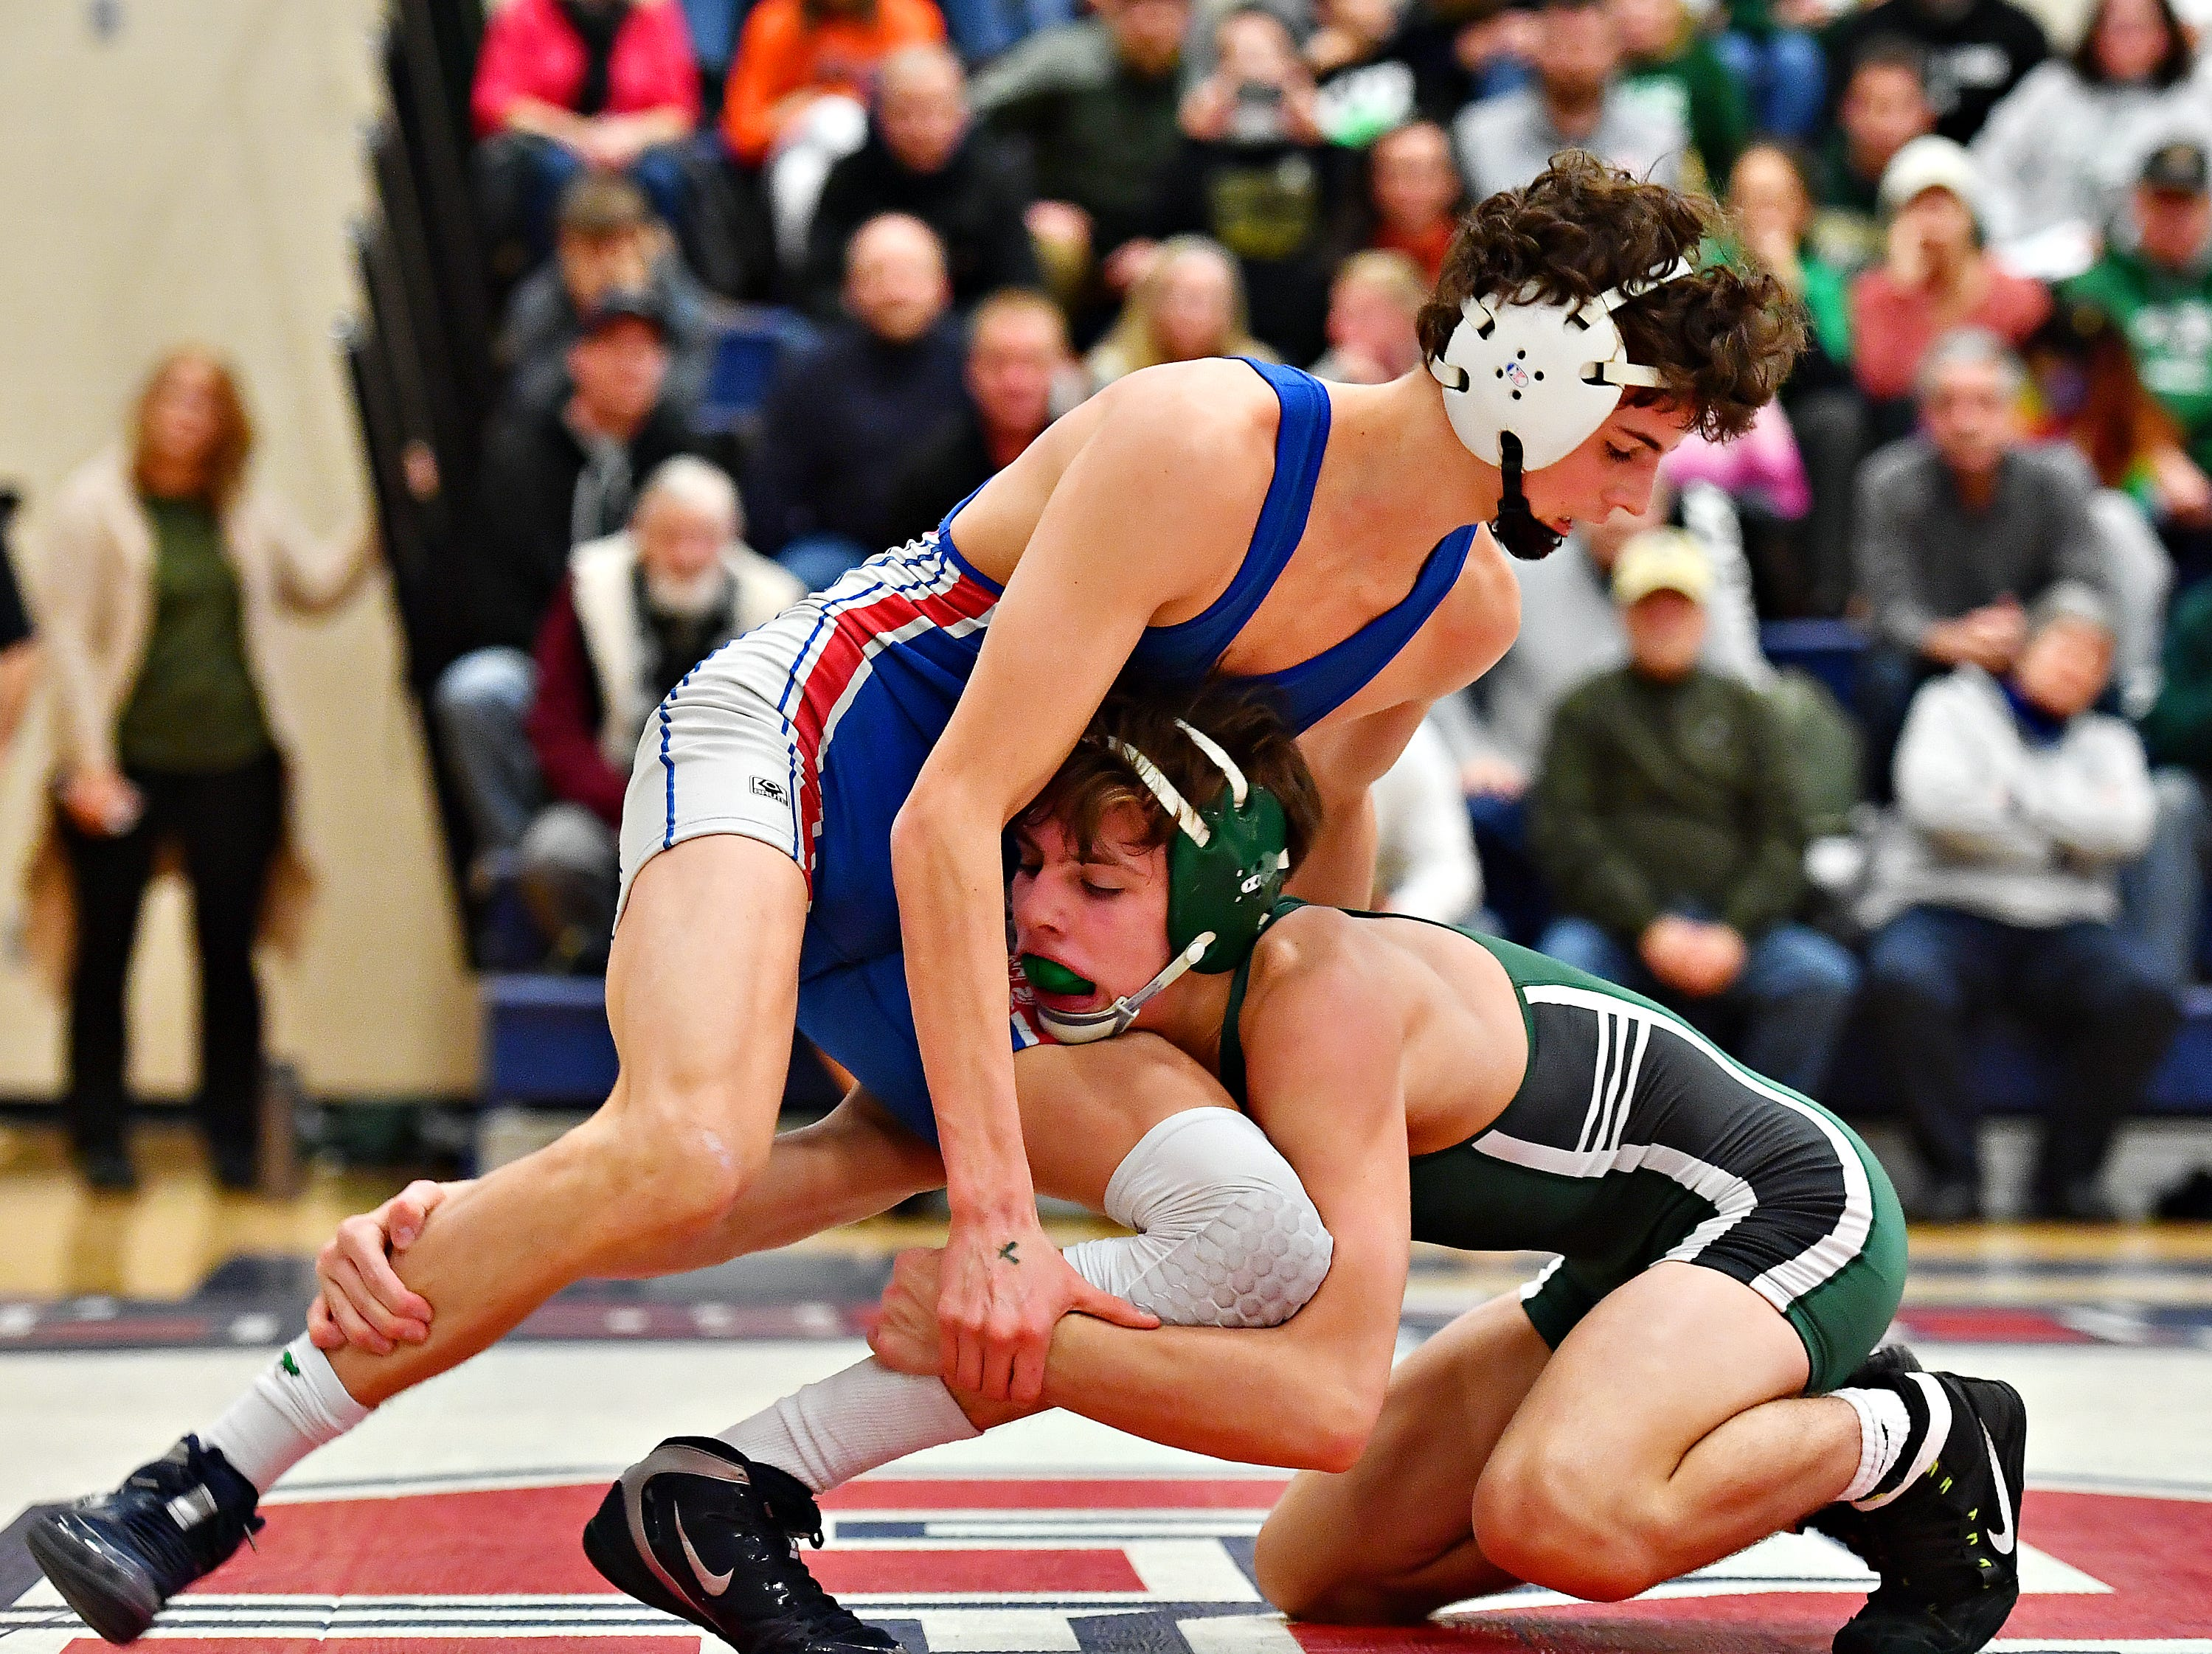 Dallastown's Cael Turnbull, left, wrestles Central Dauphin's Bryce Buckman in the 132 pound weight class during District 3, Class 3A wrestling semifinal action at Spring Grove Area High School in Jackson Township, Thursday, Jan. 31, 2019. Dawn J. Sagert photo